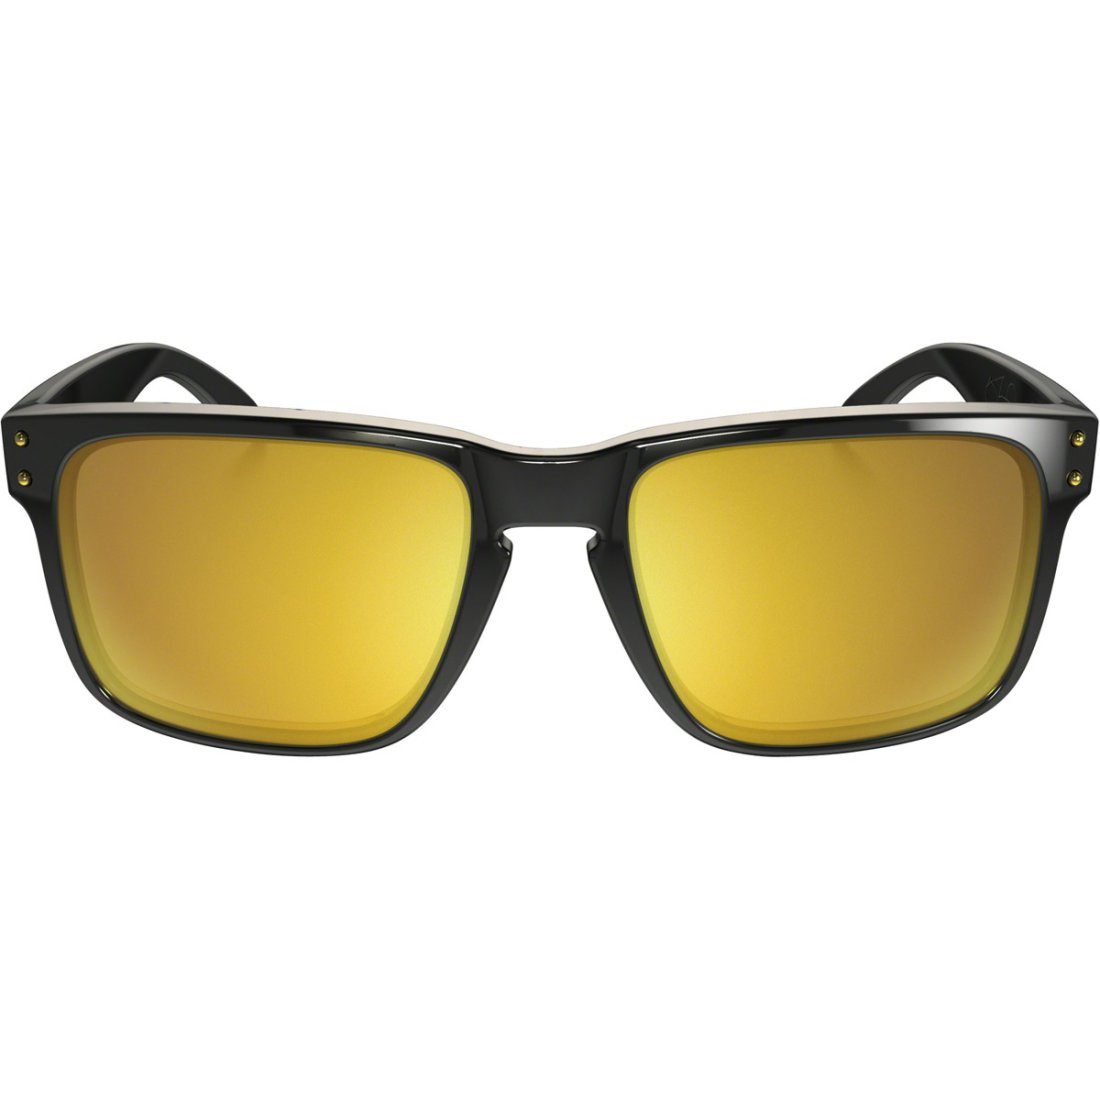 Lunettes de soleil OAKLEY Enduro Ink Collection Sepia / Dark Grey UNICA